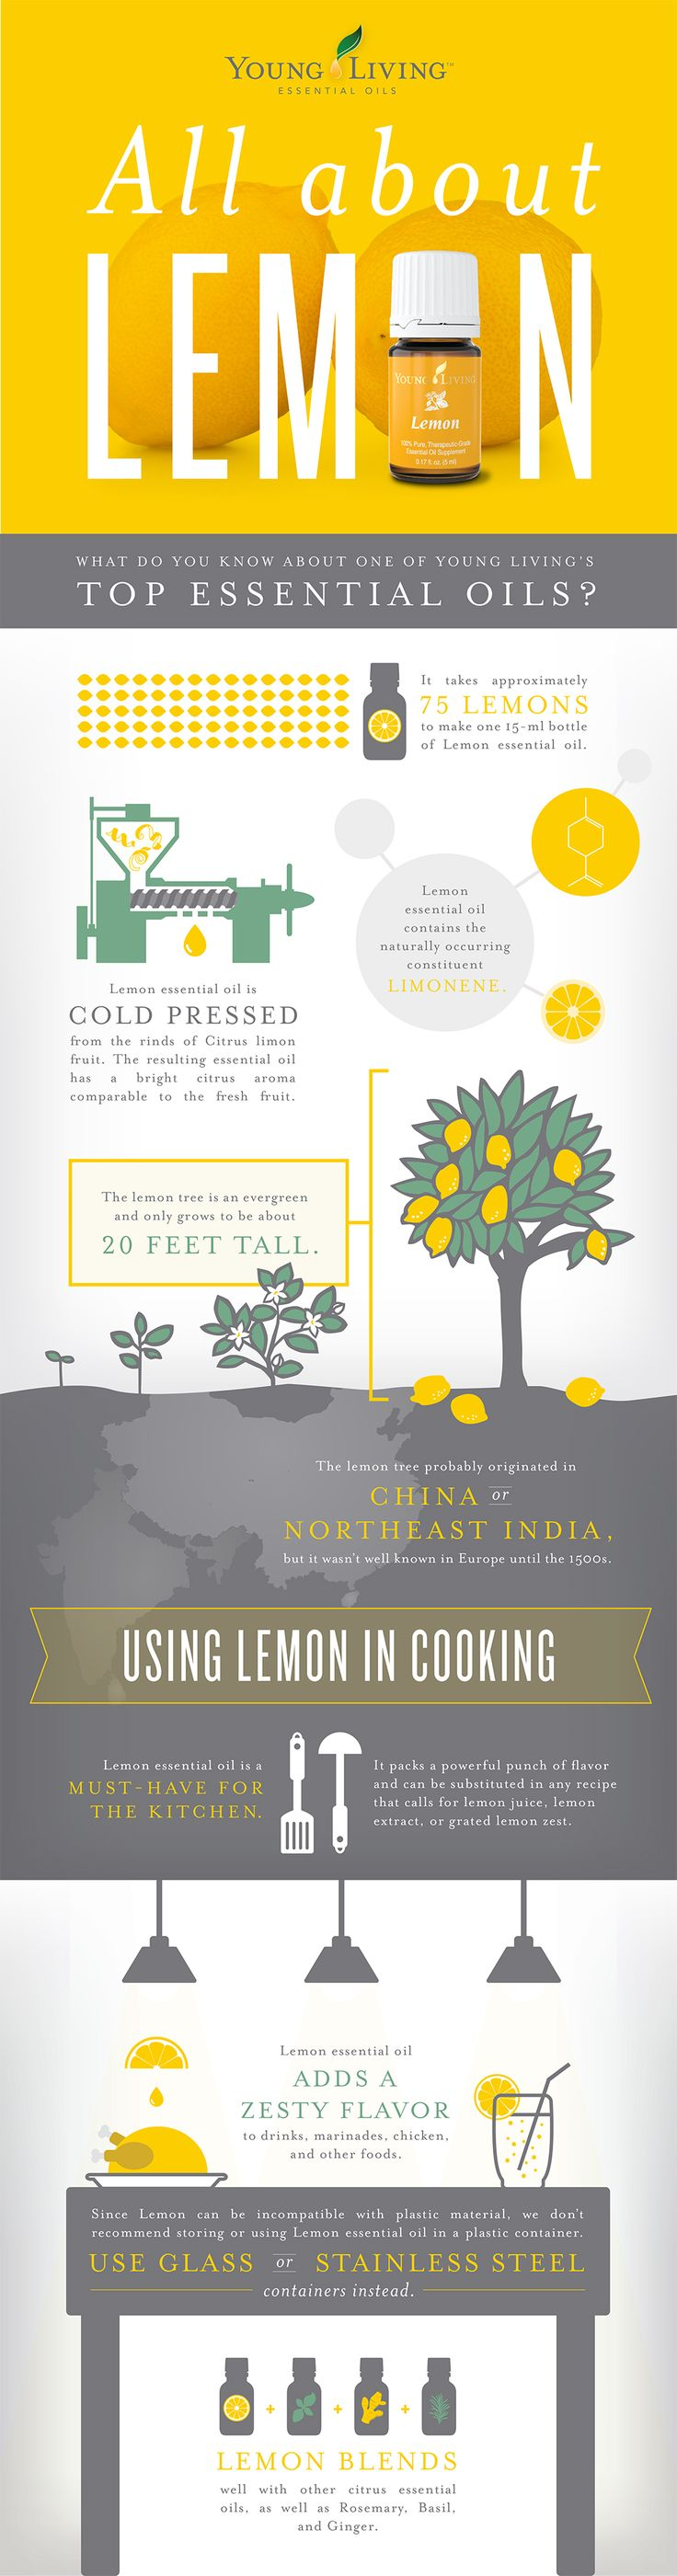 All About Lemon - Young Living - Infographic Are you sick of being sick? Are you always at the doctor's or taking medicines? Are you ready to try something different and natural for your family?